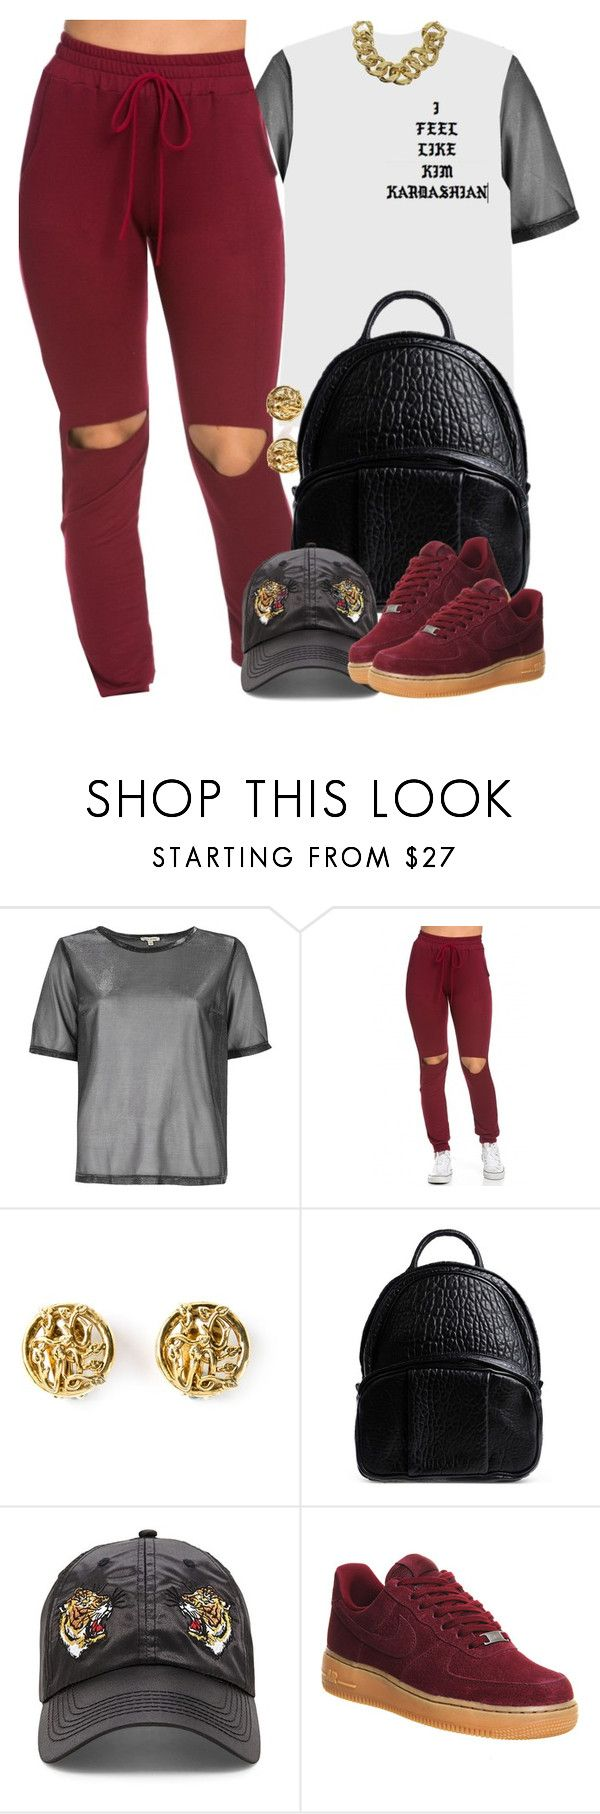 """""""unknown"""" by nasiaswaggedout ❤ liked on Polyvore featuring River Island, Moschino, Alexander Wang, 21 Men, NIKE and ASOS"""